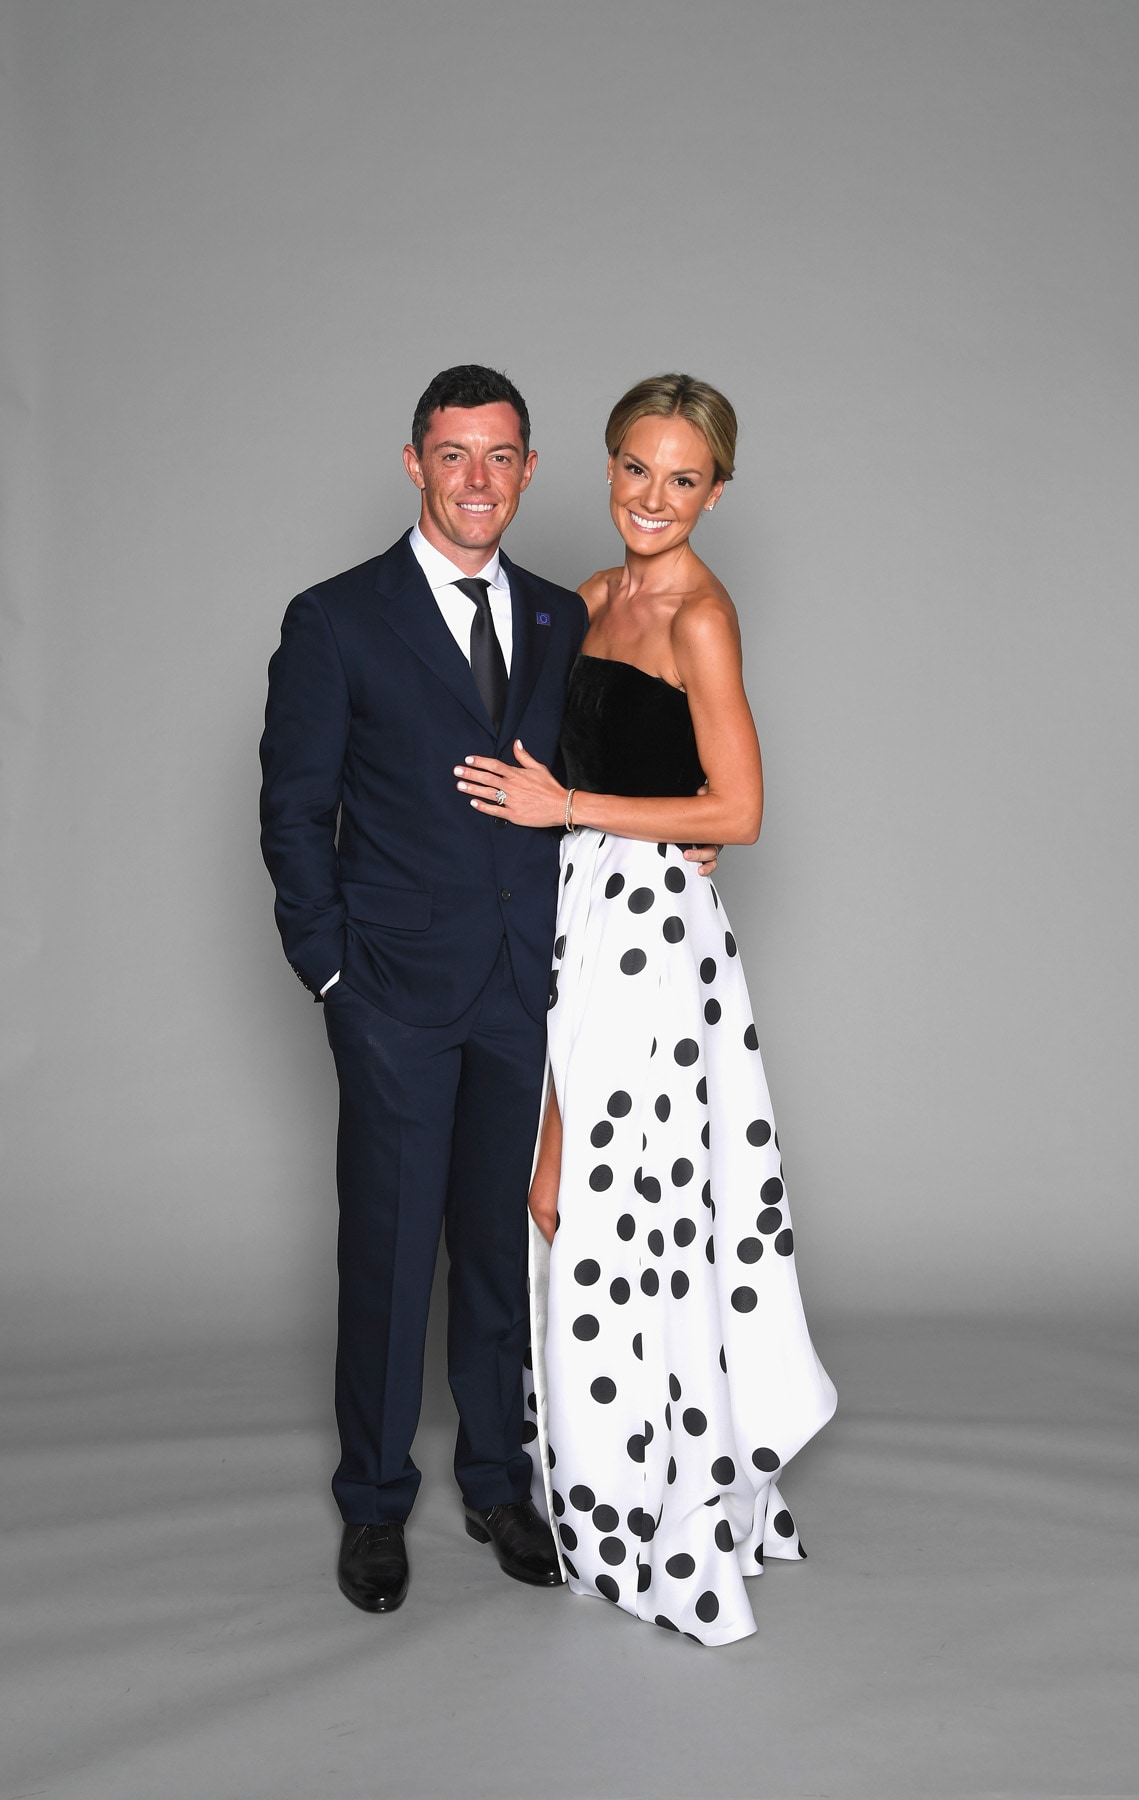 Rory and Erica McIlroy